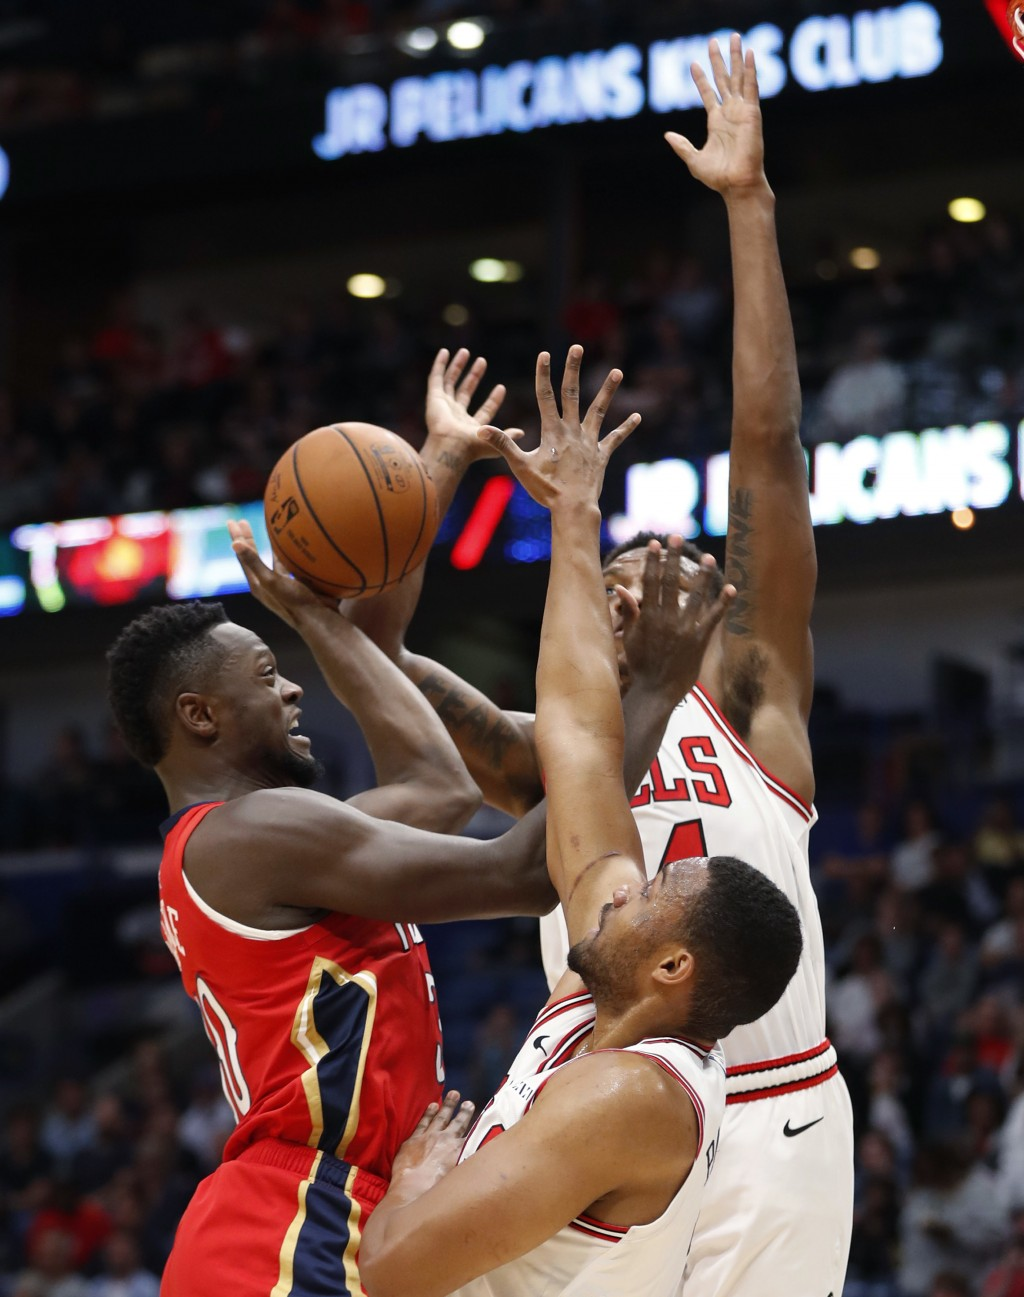 New Orleans Pelicans forward Julius Randle shoots against Chicago Bulls forward Wendell Carter Jr., top, and forward Jabari Parker during the first ha...